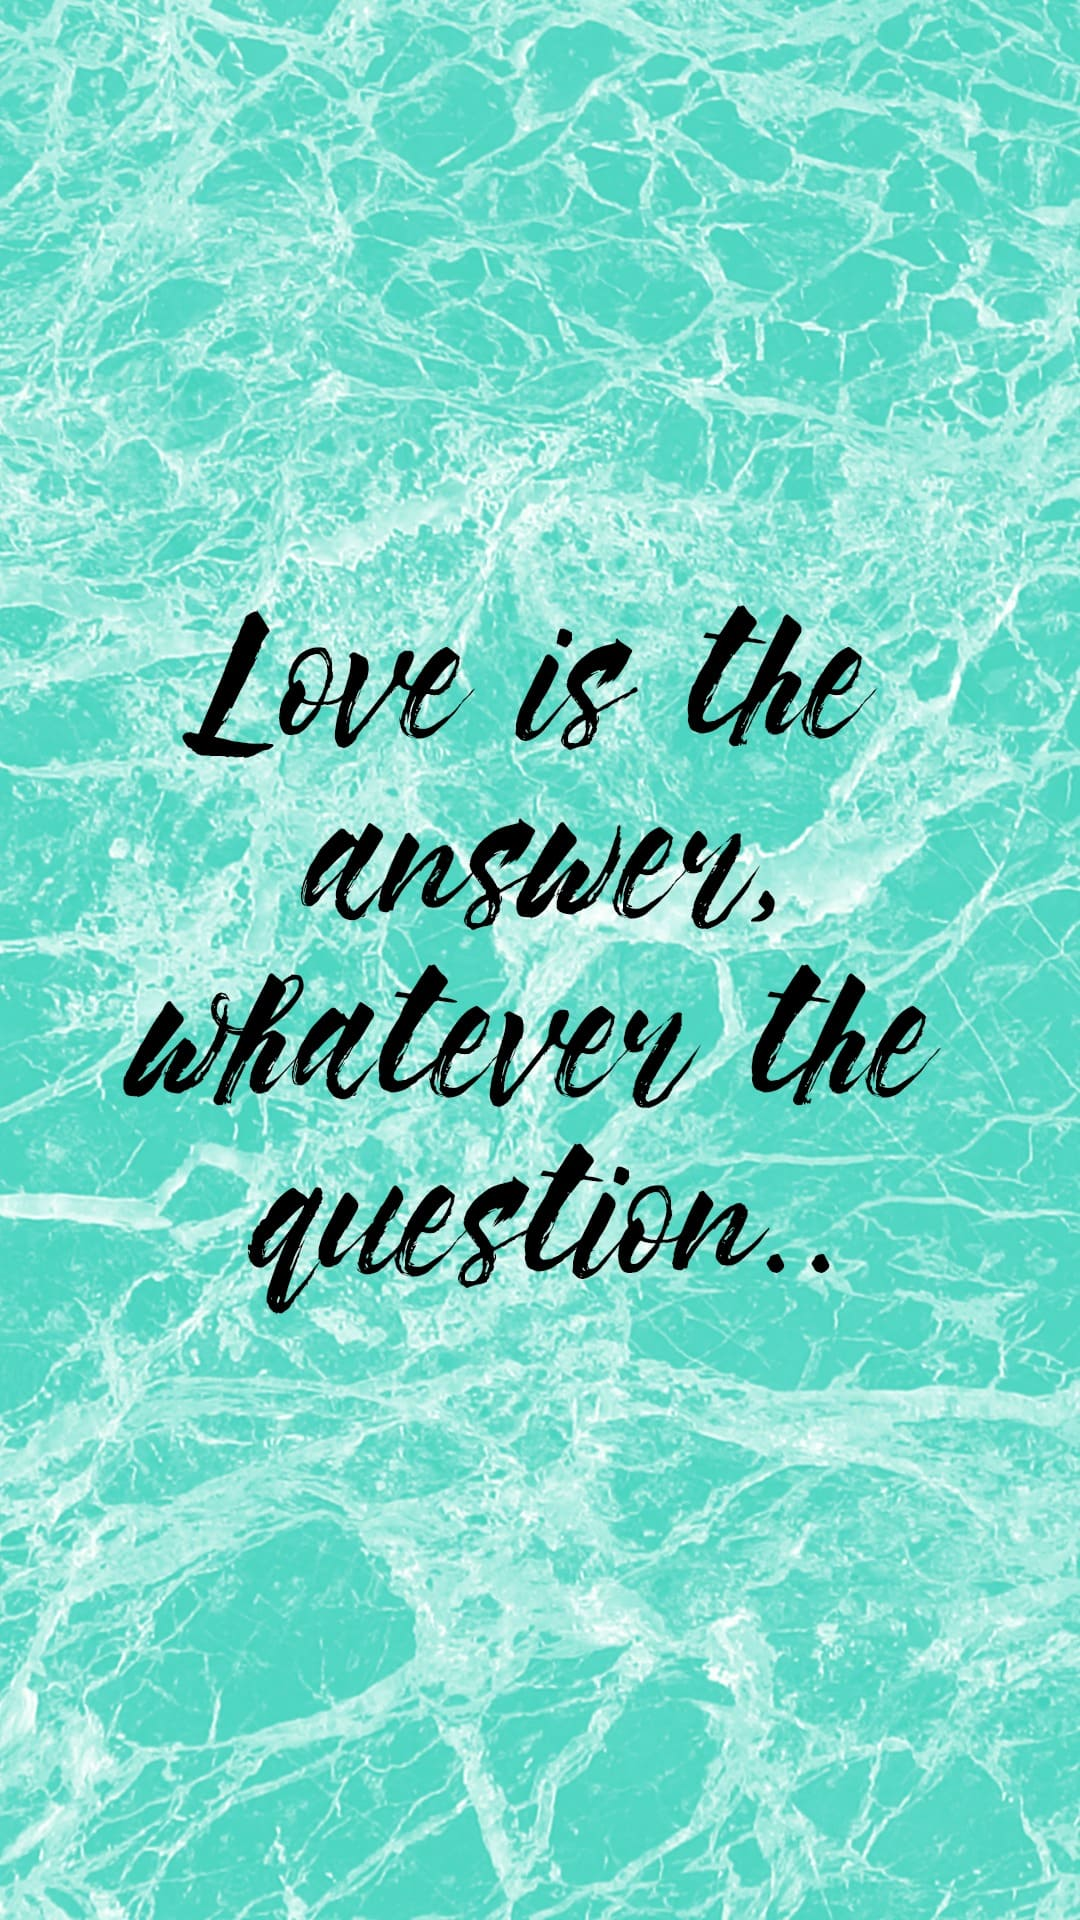 Love is the answer whatever the question.